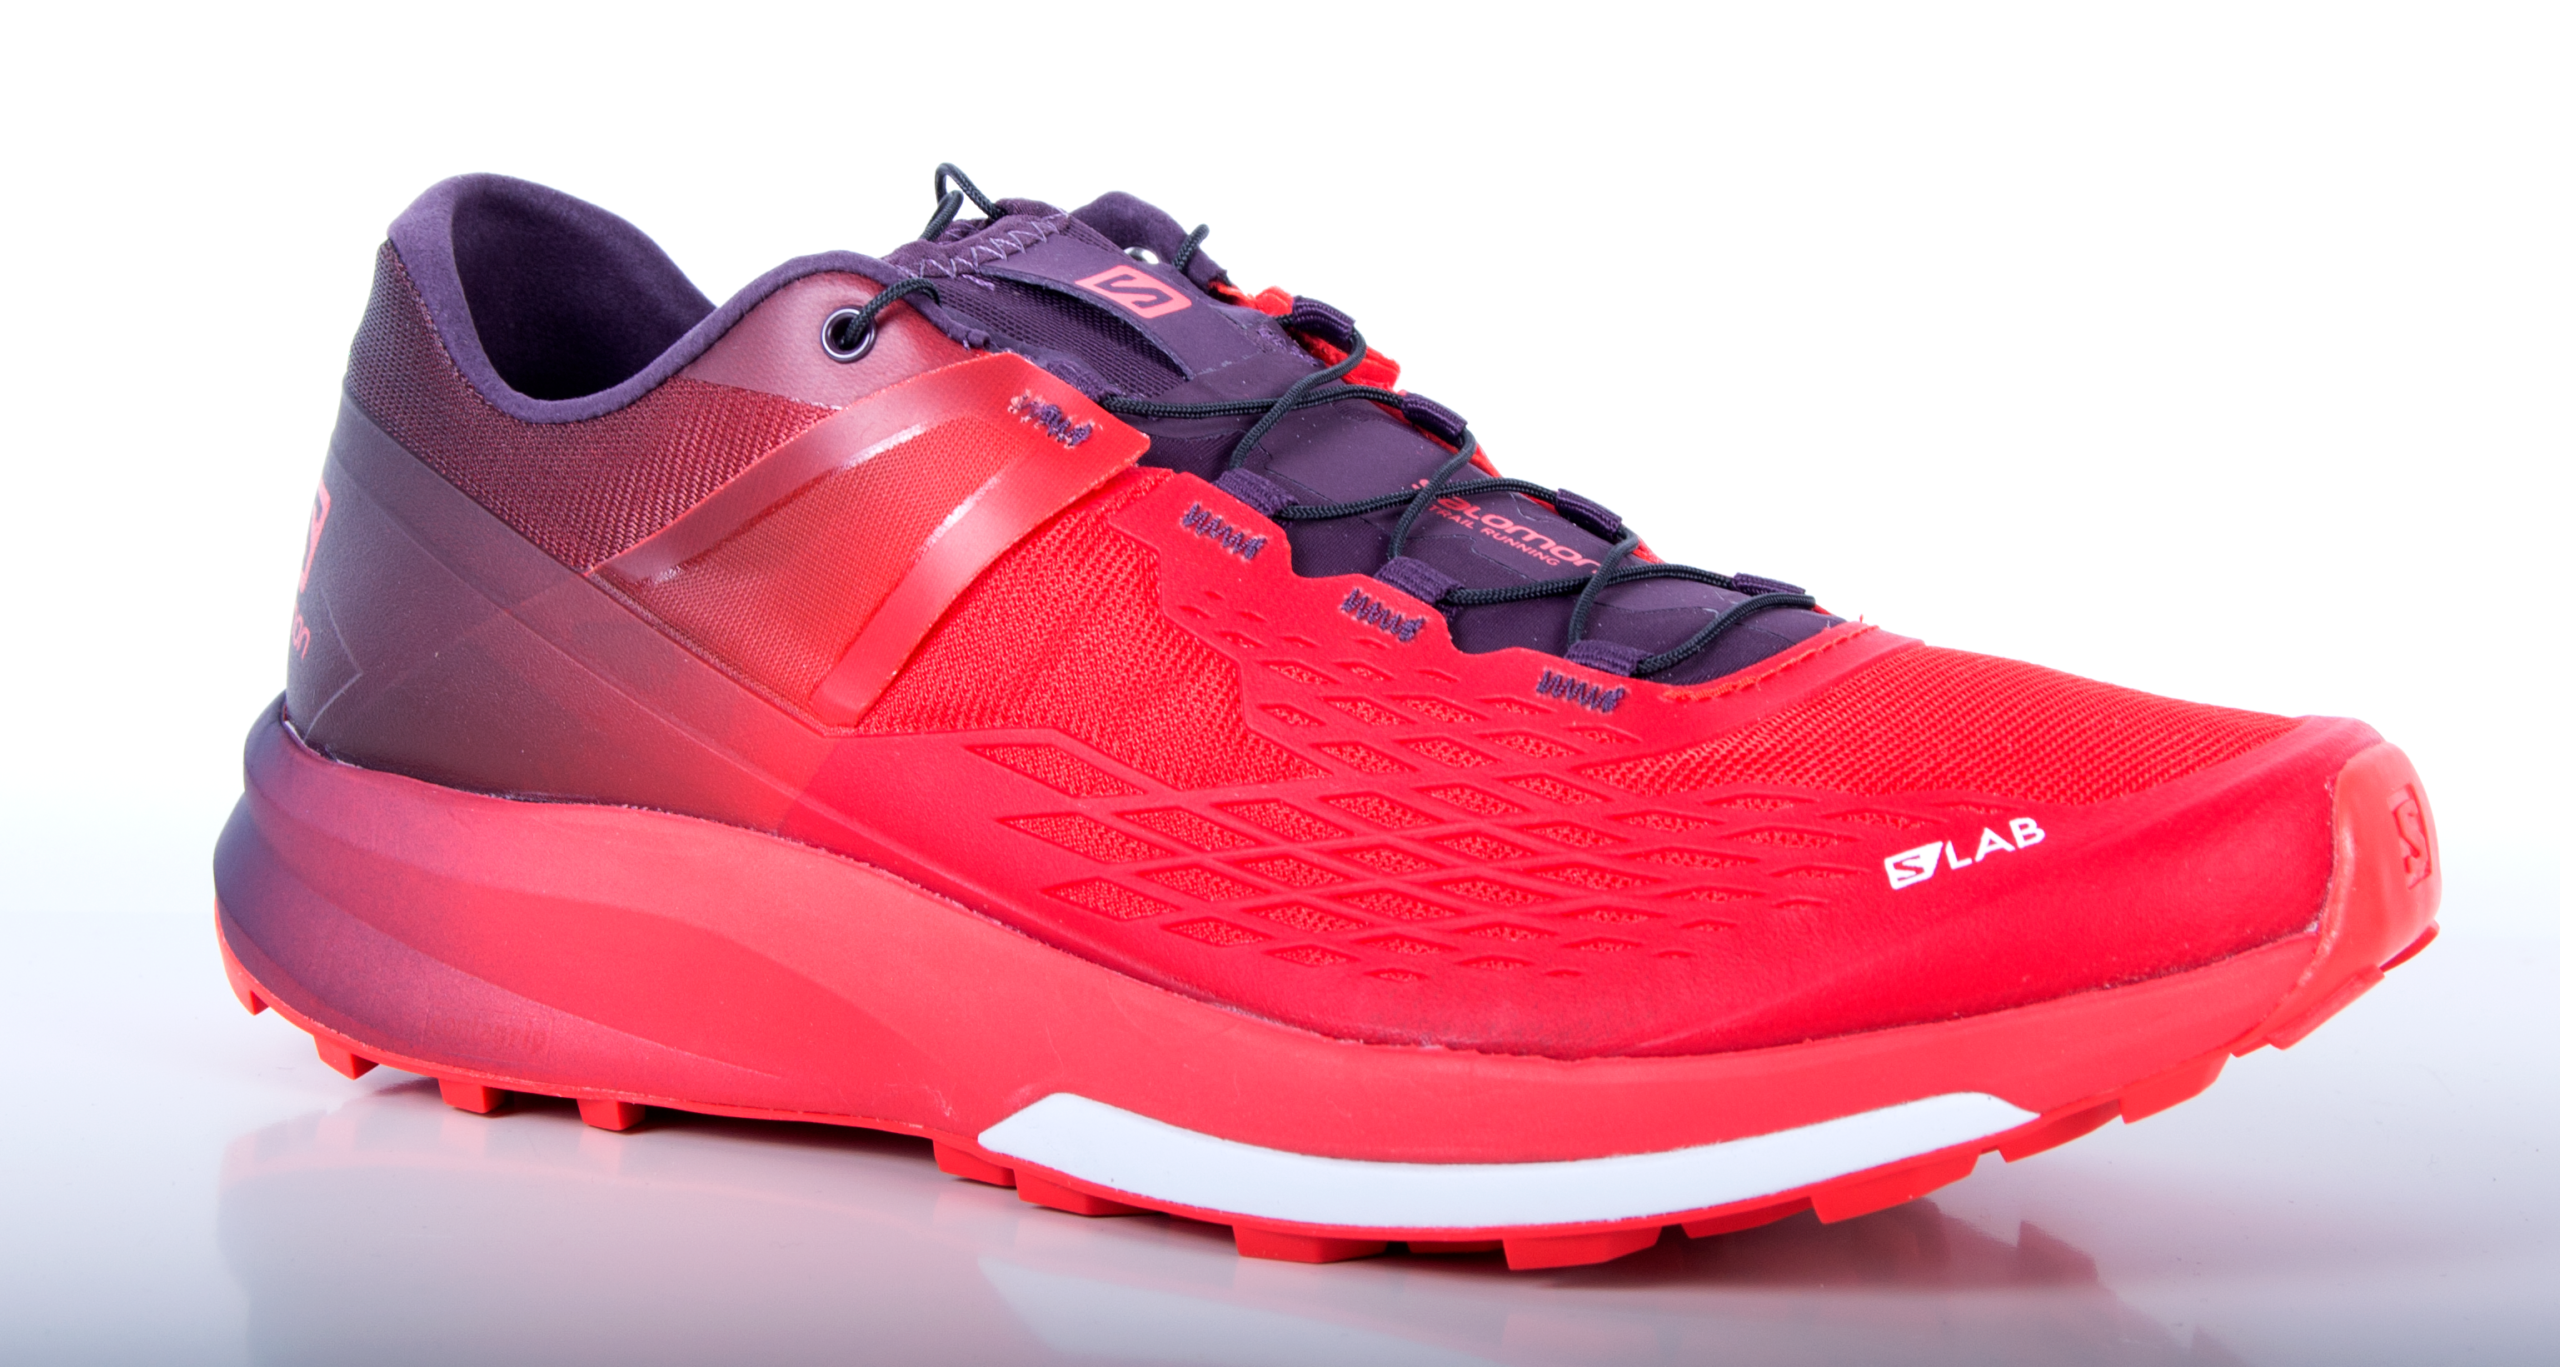 lateral-zapatillas-salomon-slab-ultra-21